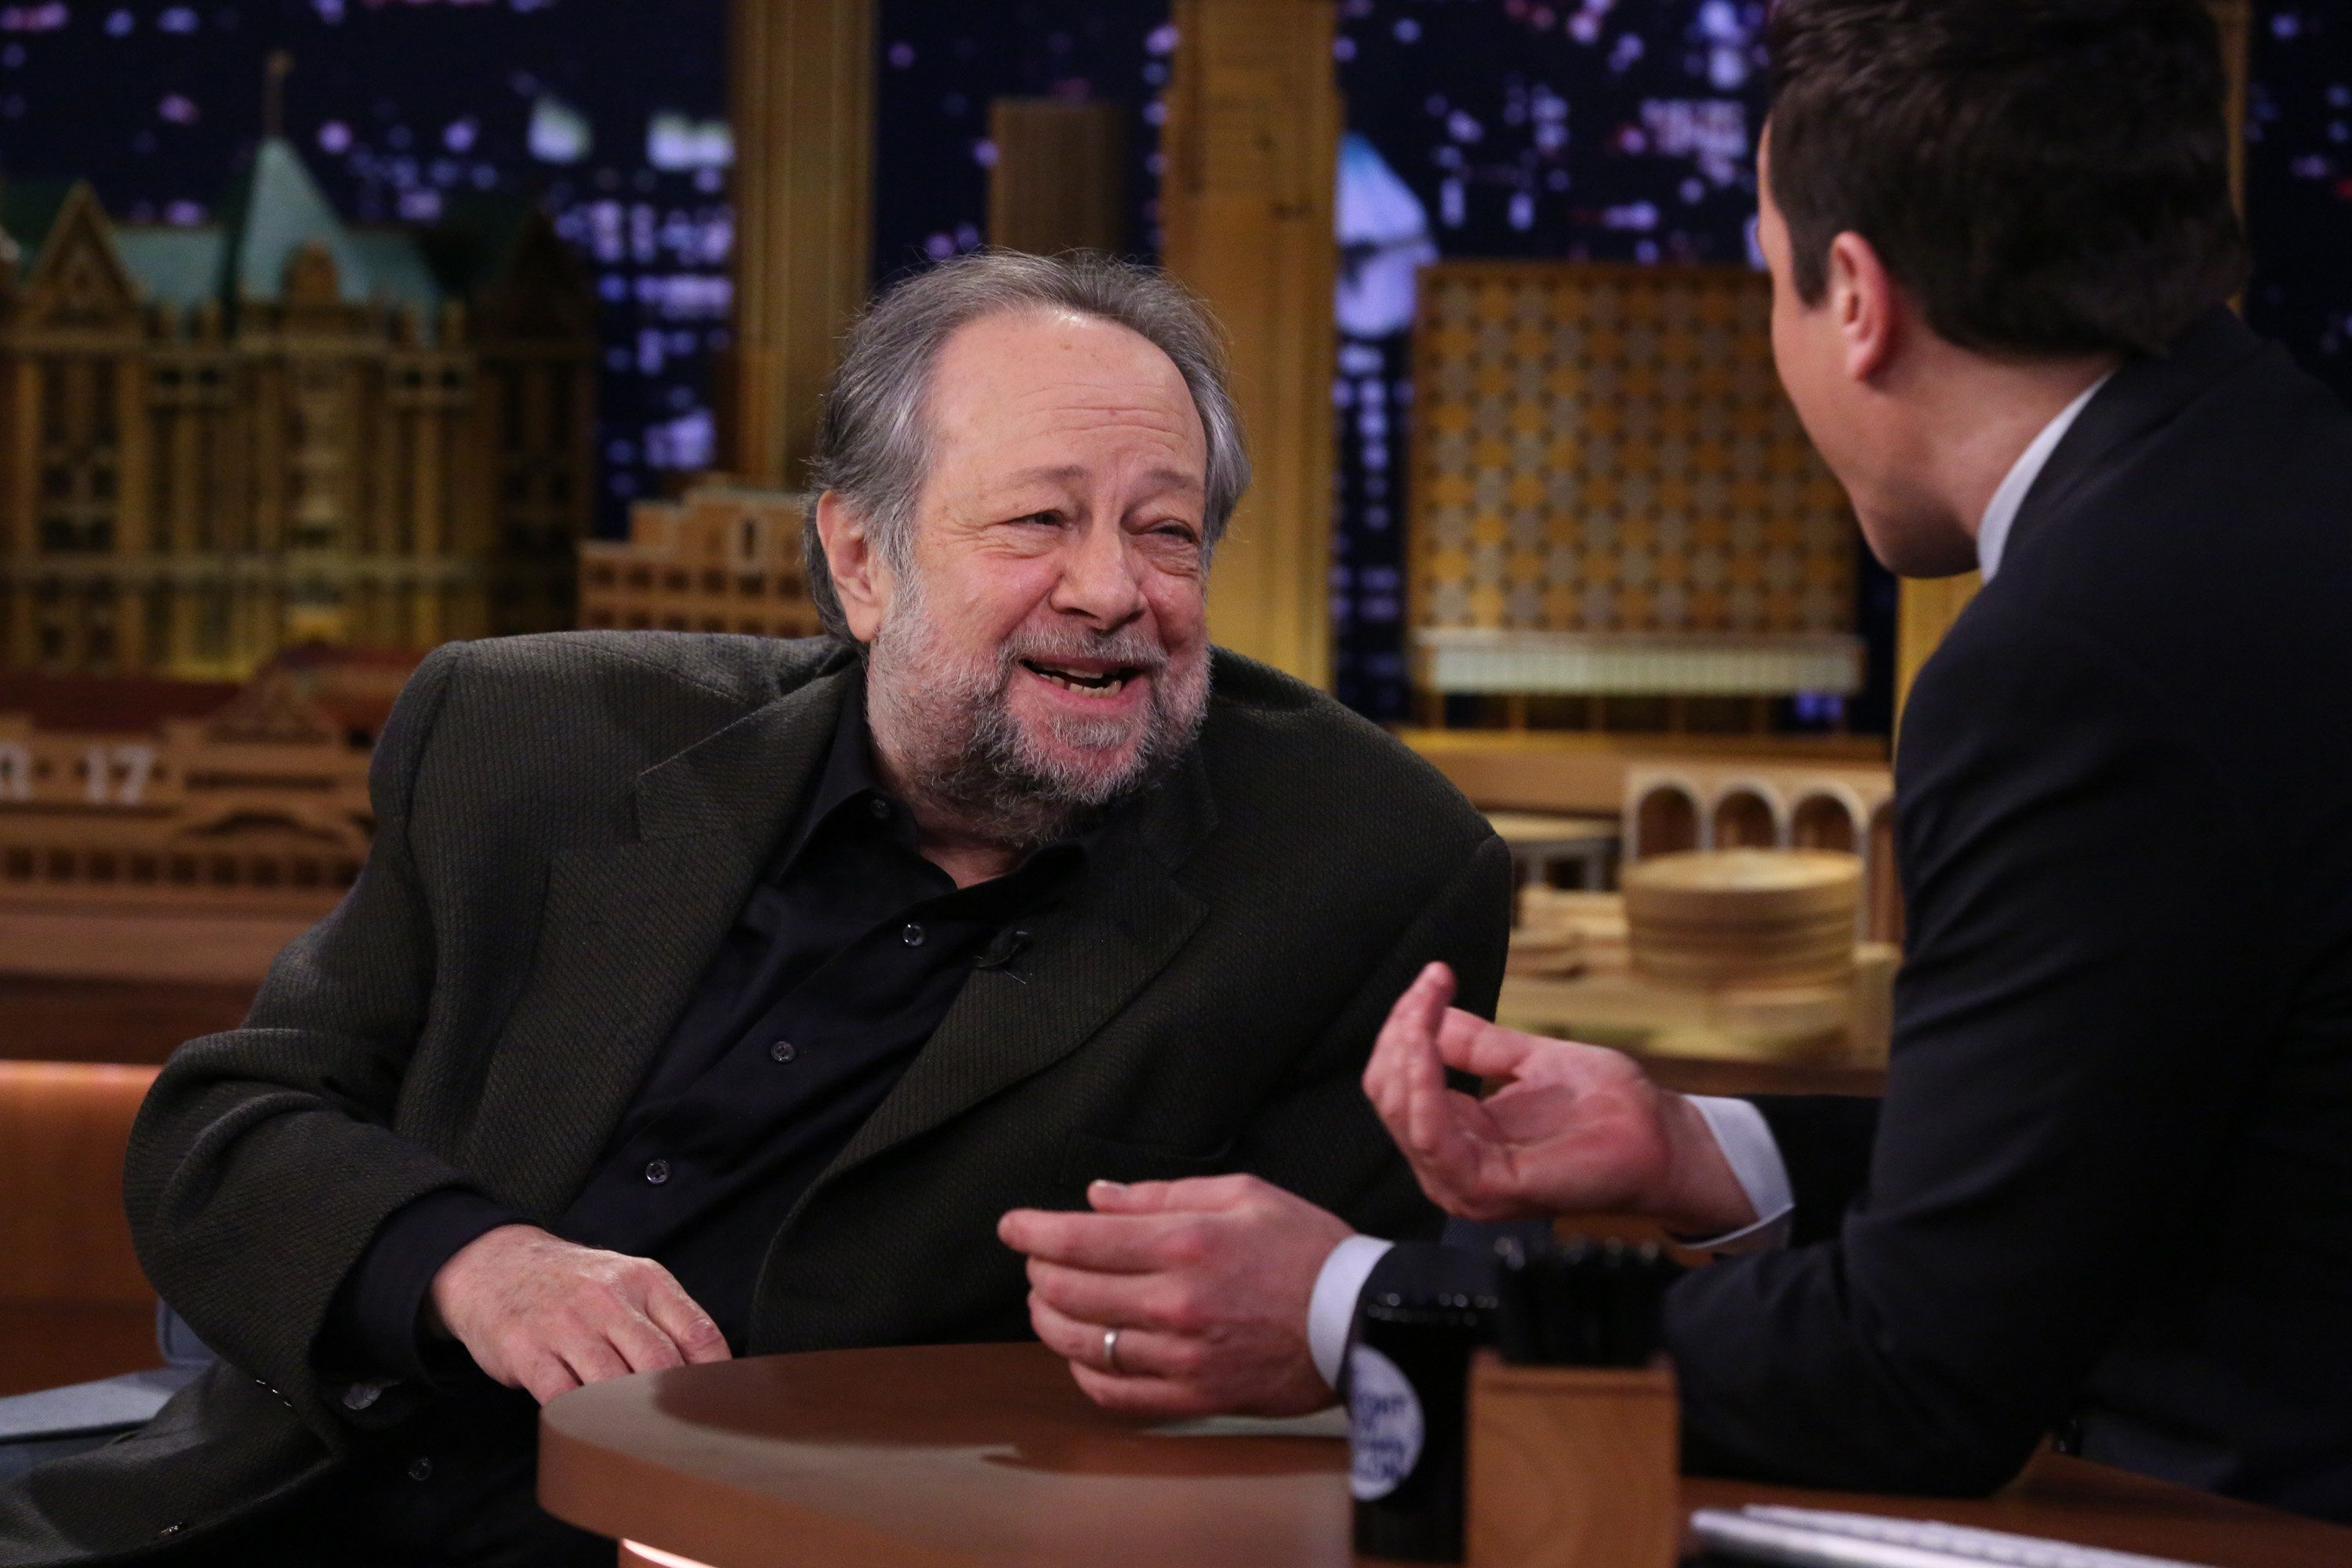 Legendary magician Ricky Jay chats with late-night host Jimmy Fallon on March 31, 2014.